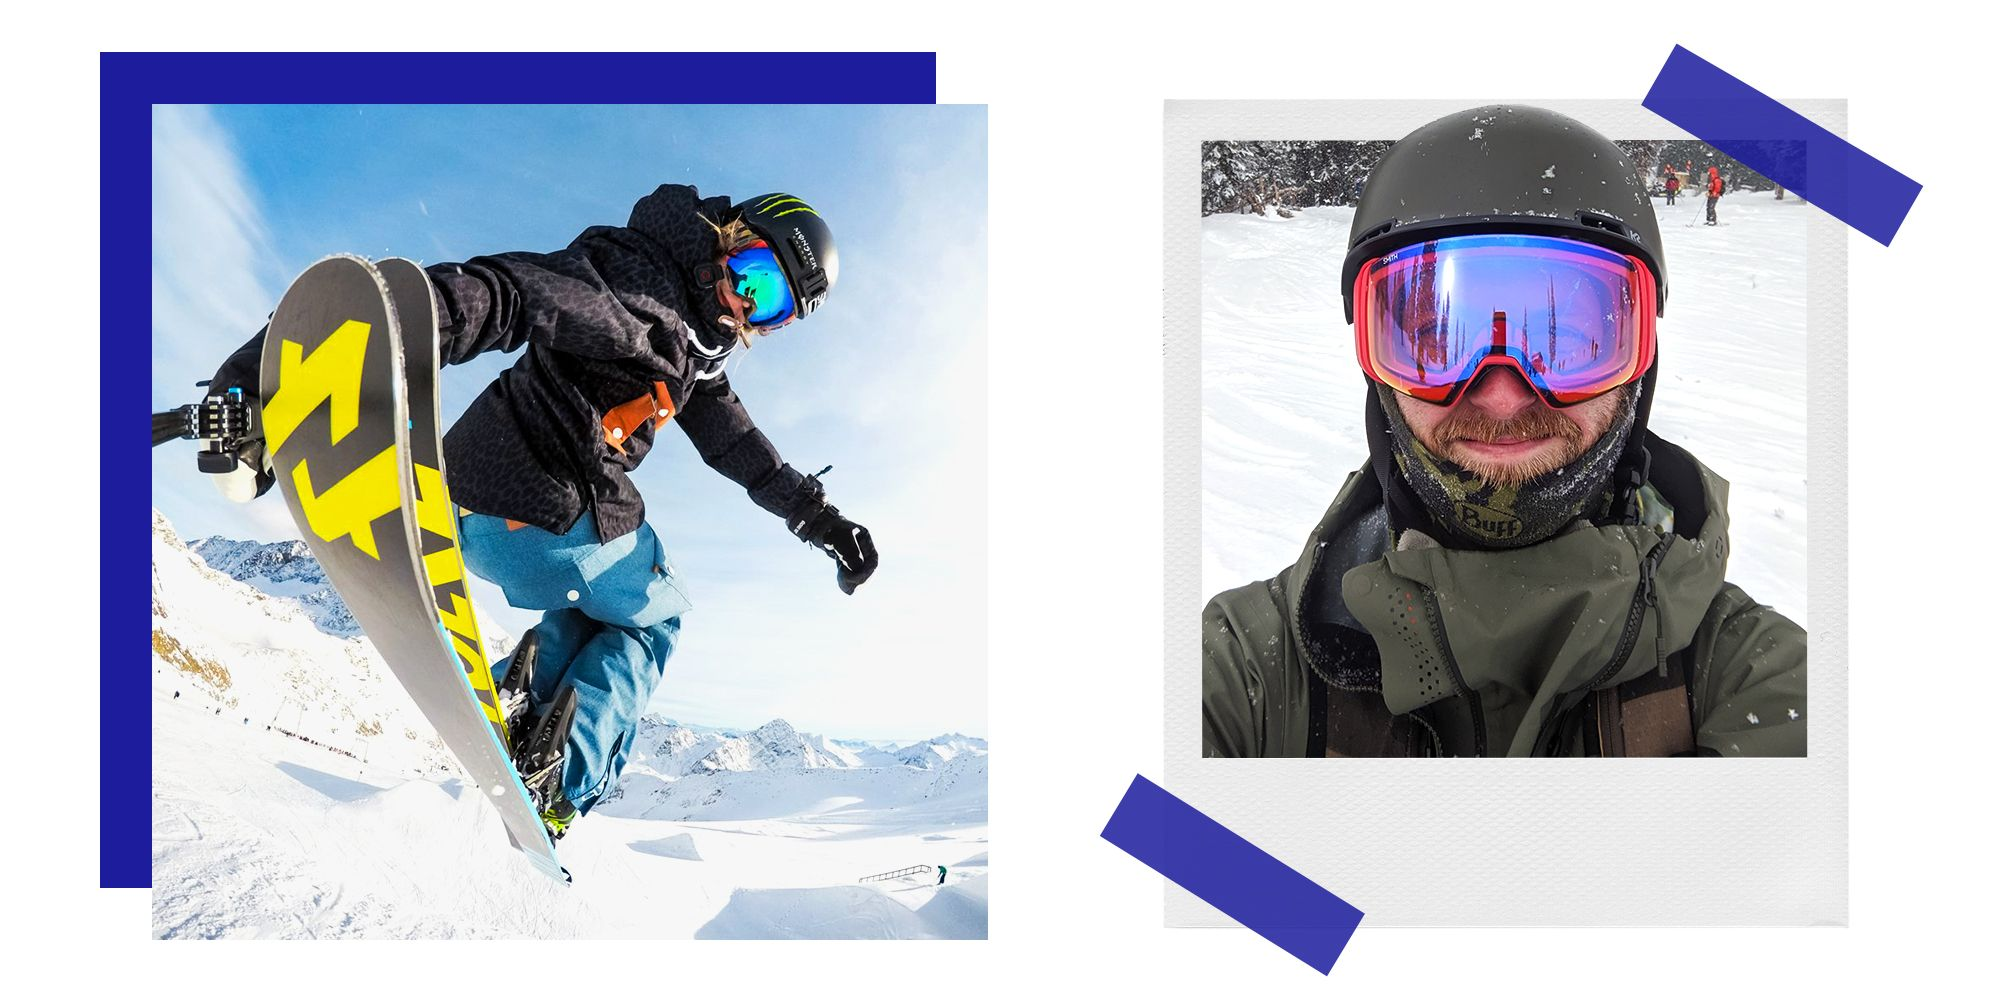 Smith's 4D Mag Ski Goggles Provide Virtually Unobstructed Views of the Mountain